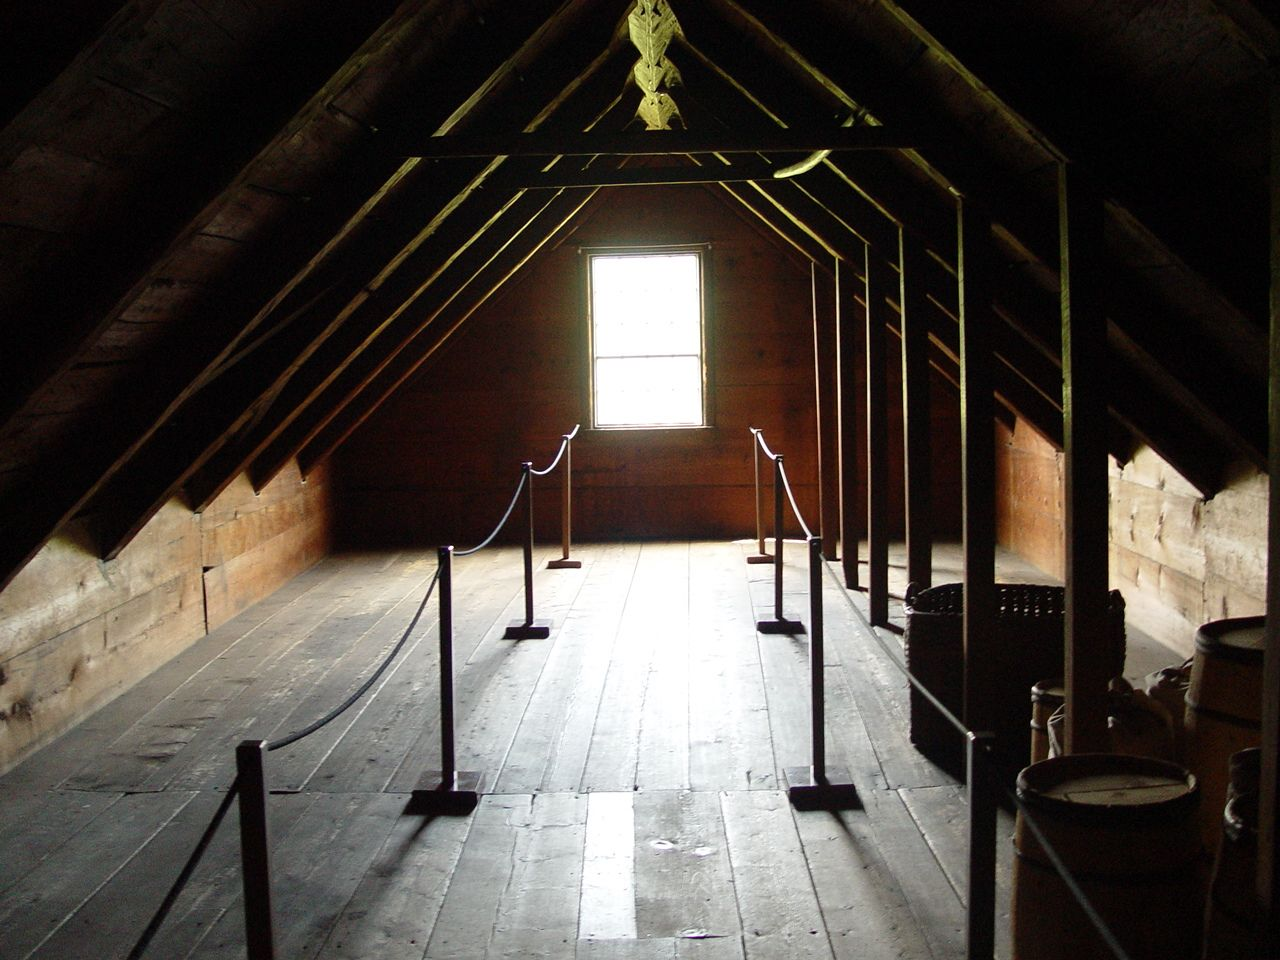 The Attic Of The Dutton House At Shelburne Museum Supposedly Haunted By The Ghost Of An Old Man